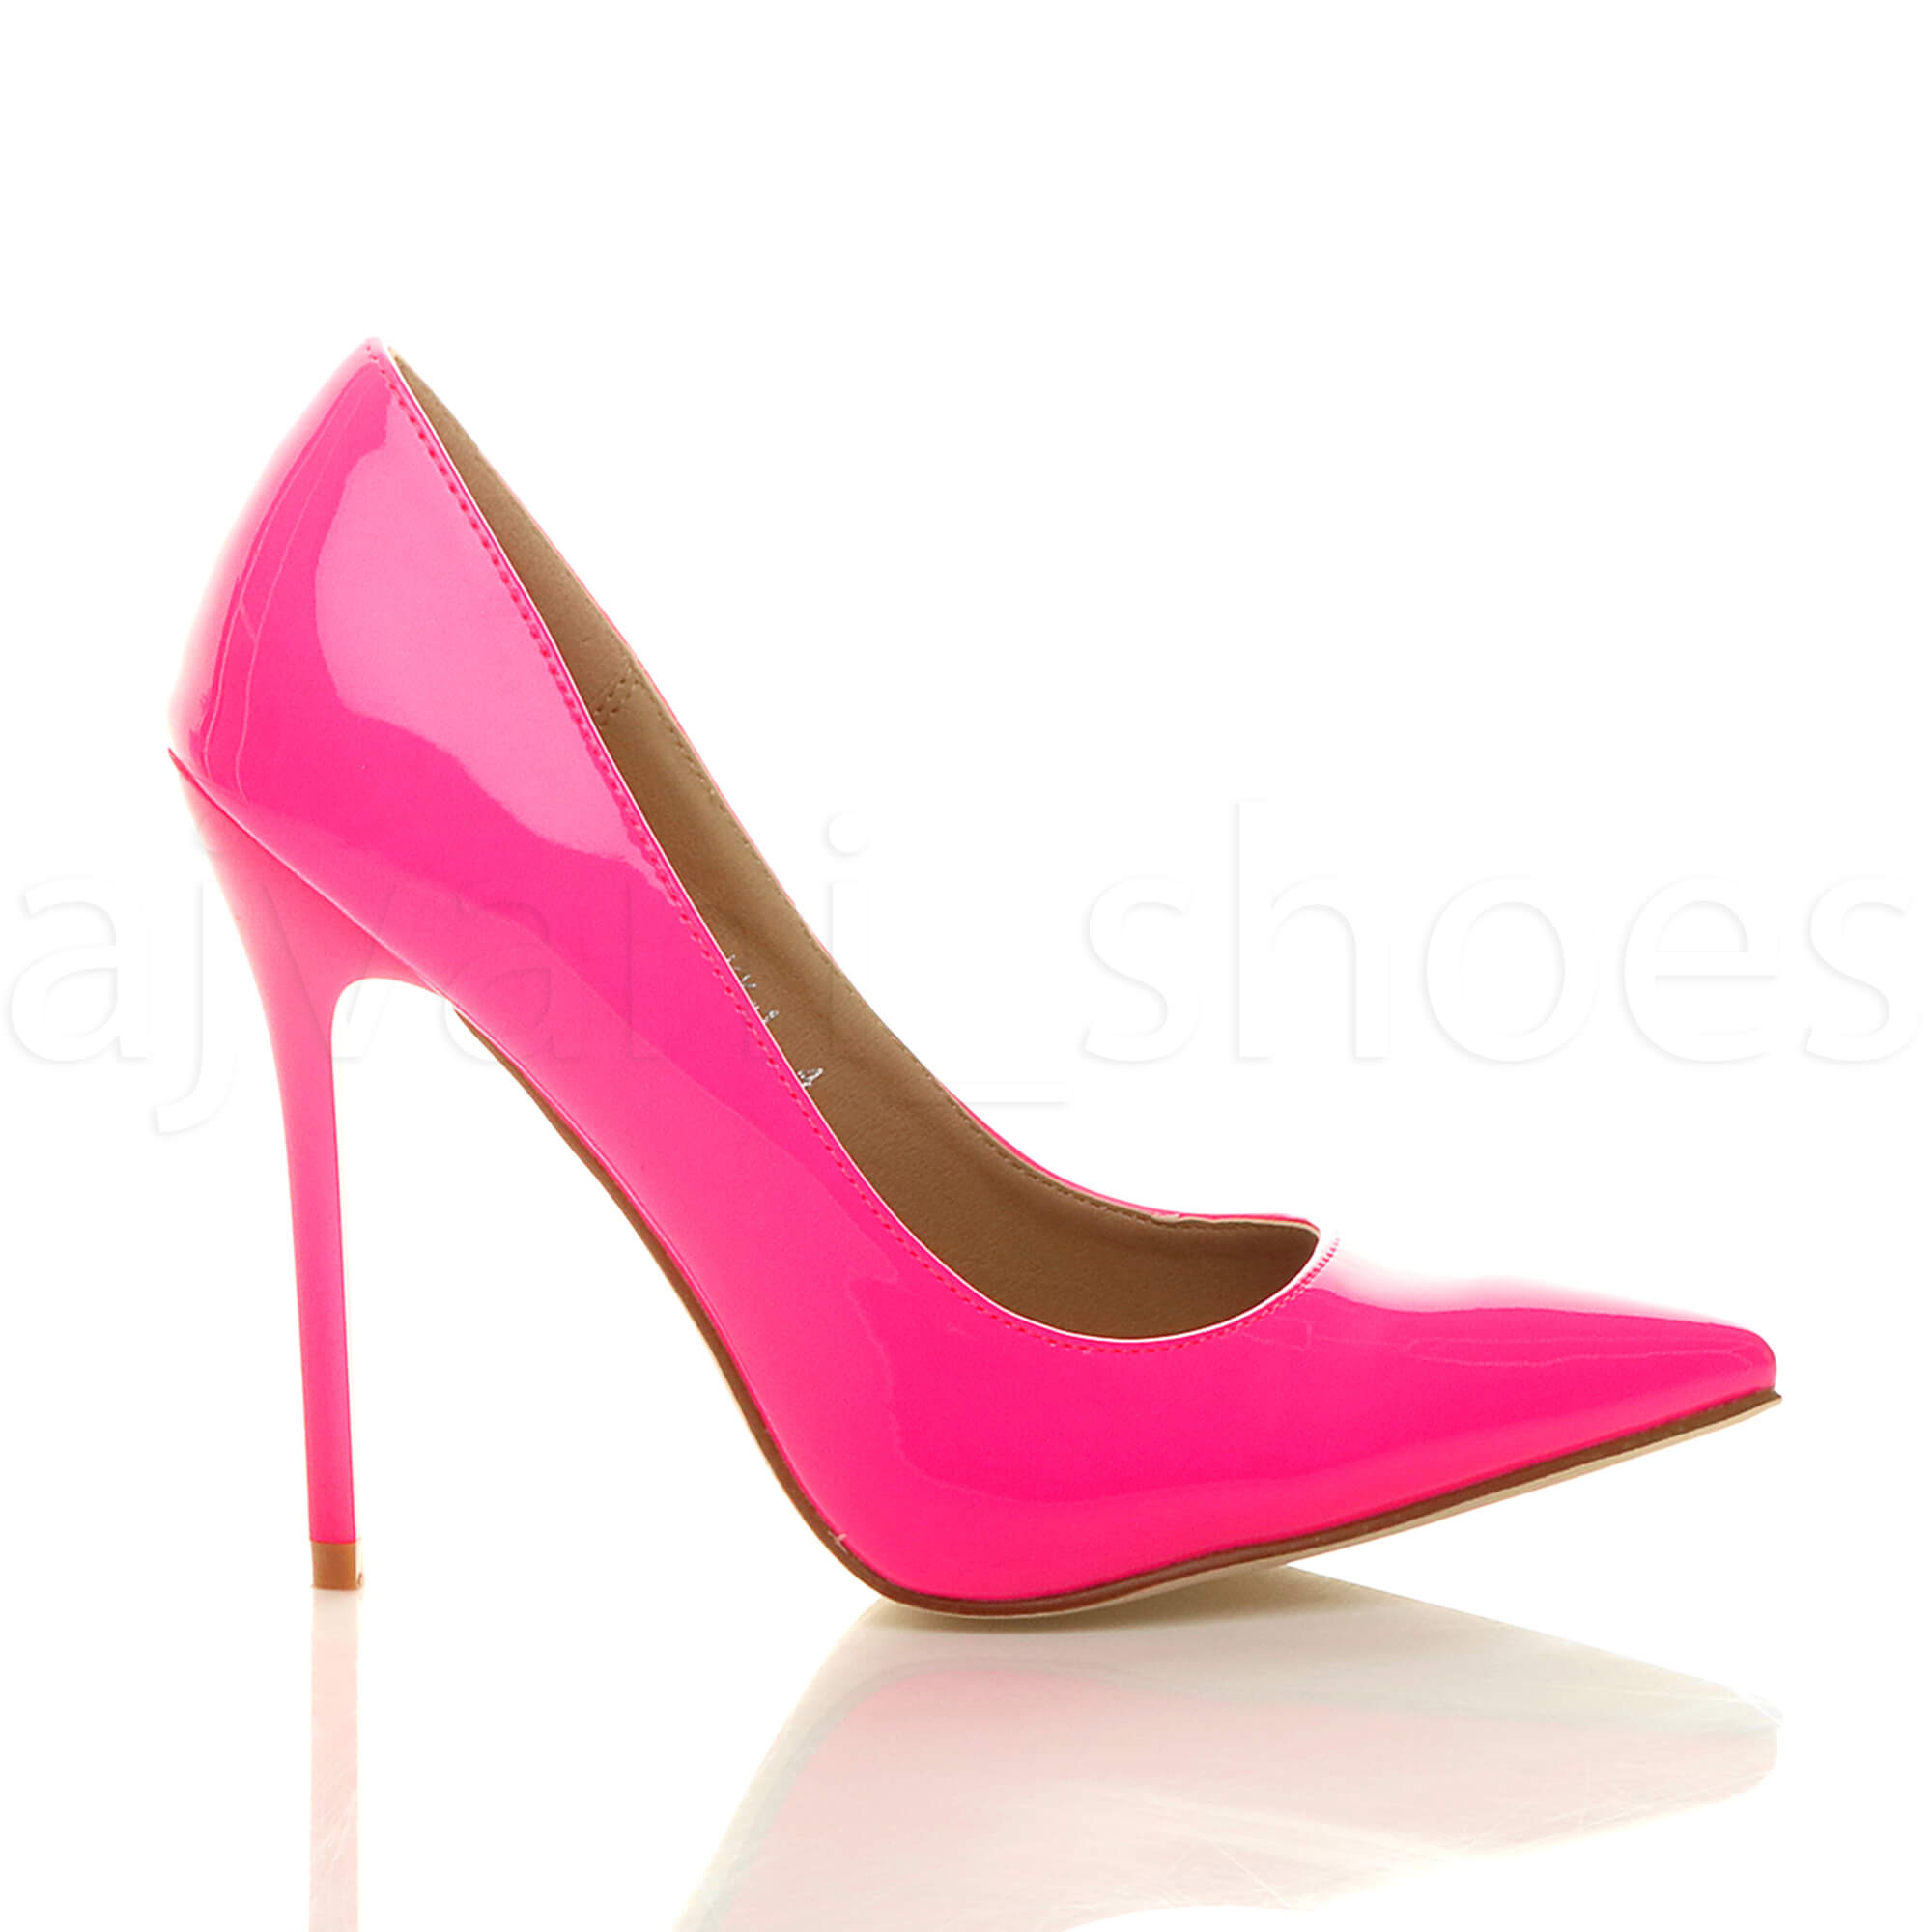 WOMENS-LADIES-HIGH-HEEL-POINTED-CONTRAST-COURT-SMART-PARTY-WORK-SHOES-PUMPS-SIZE thumbnail 105